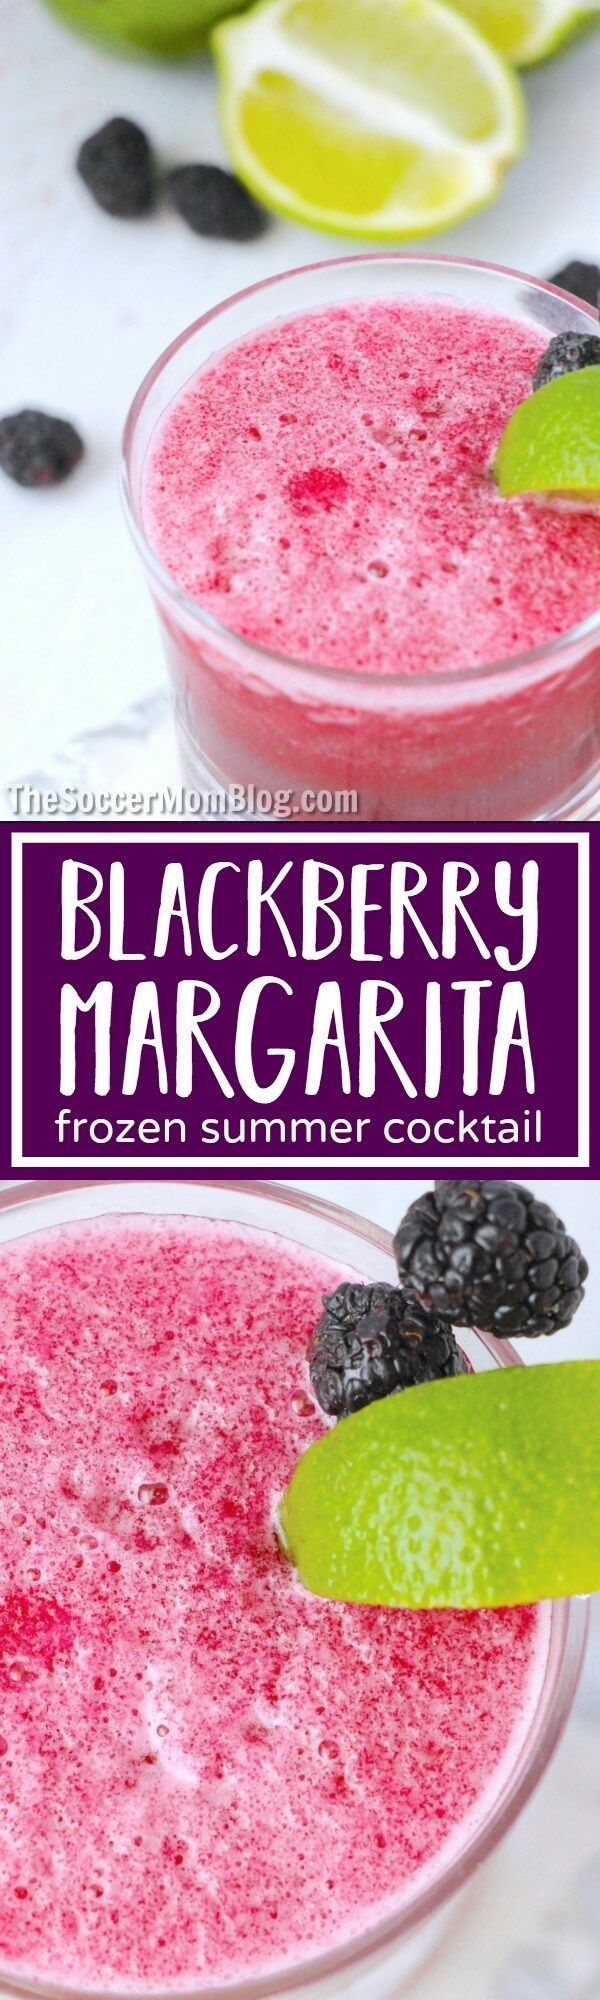 A vibrant pairing of ripe blackberries and smooth tequila, this Fresh Blackberry Margarita is a true summer treat! Perfect for parties or by the pool.